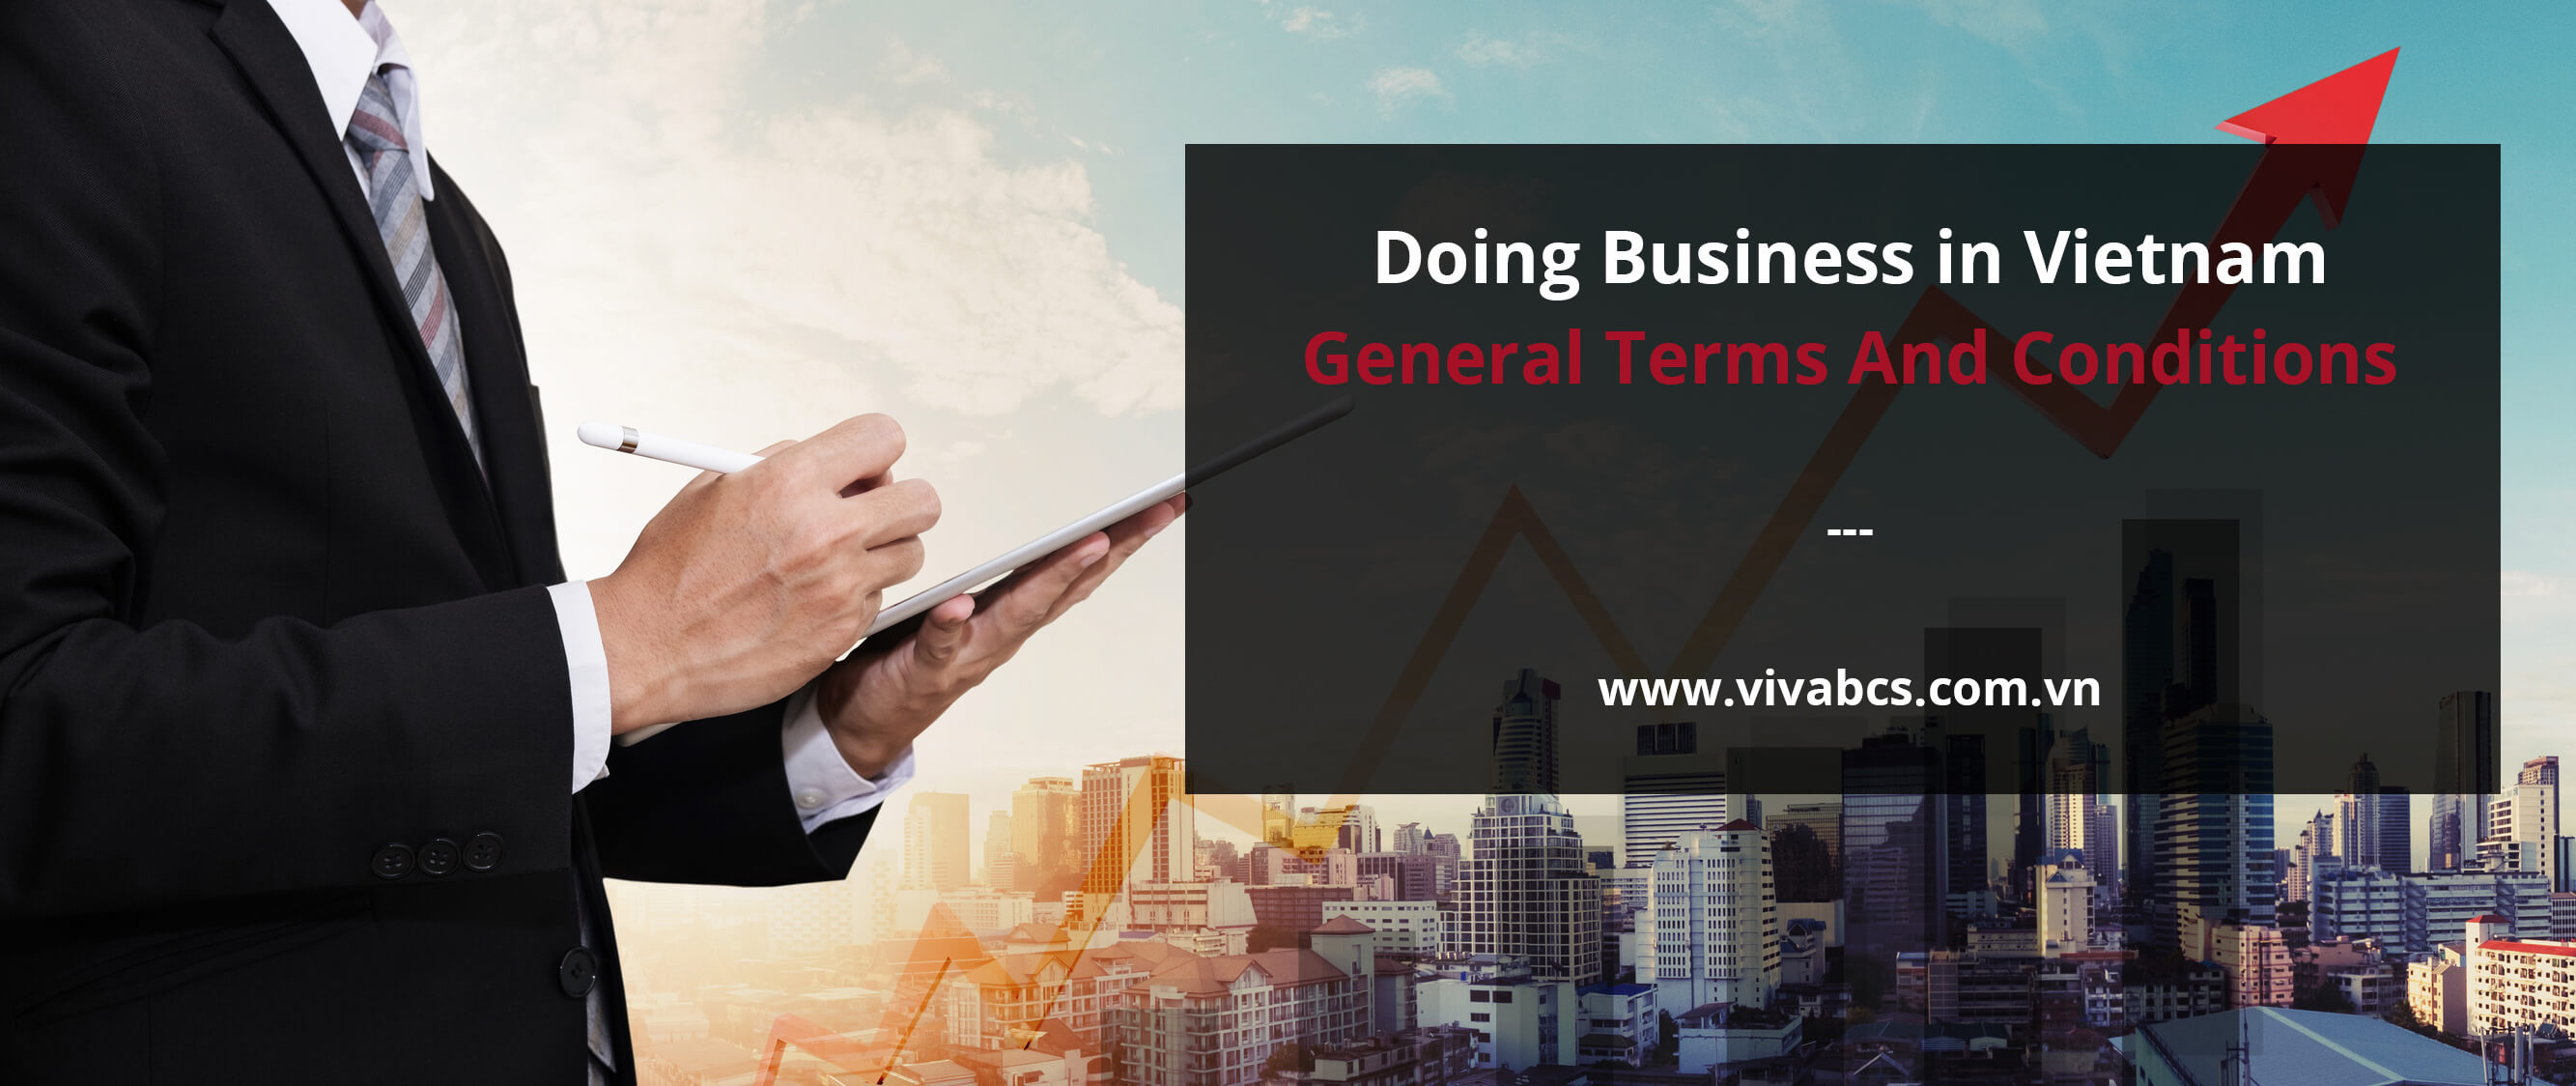 Business Regulations in Vietnam - General Terms And Conditions